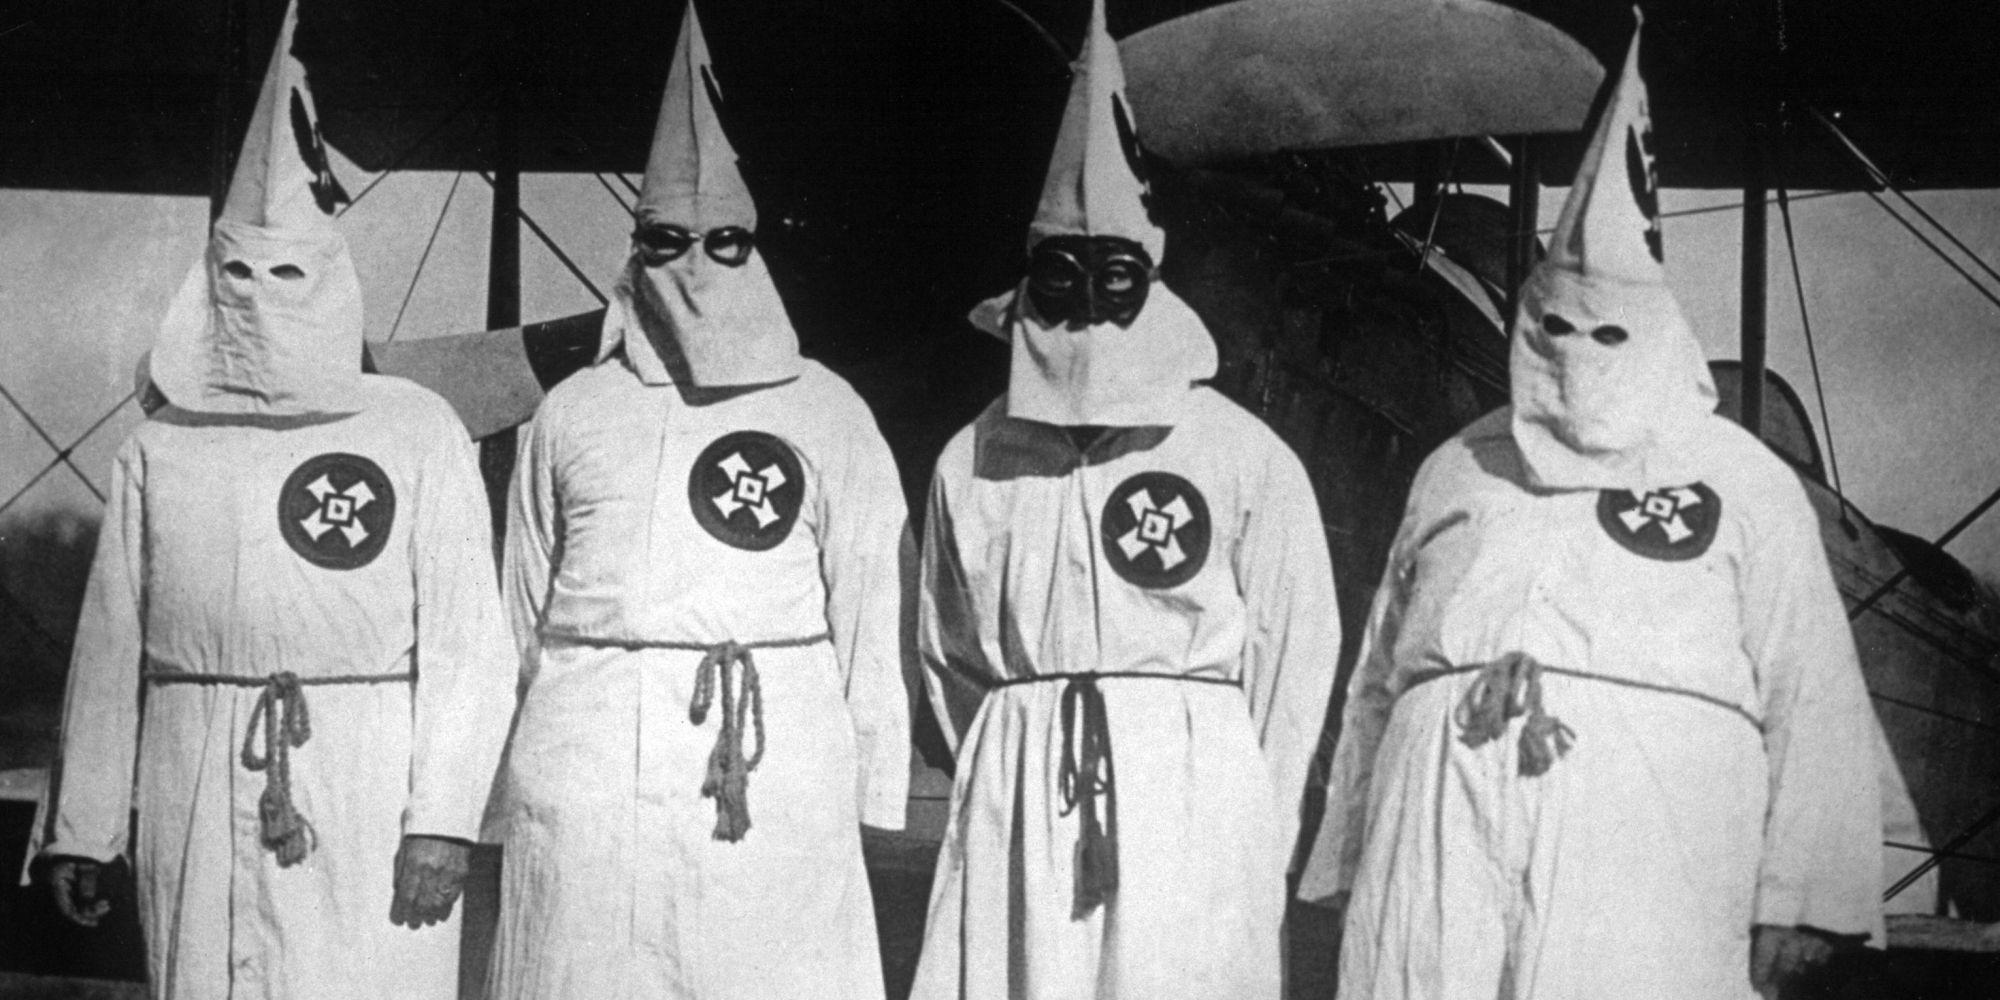 The most hated clan in the us the klu klux klan onedio a group including many former confederate veterans founded the first branch of the ku klux klan as a social club in pulaski tennessee in 1866 biocorpaavc Images